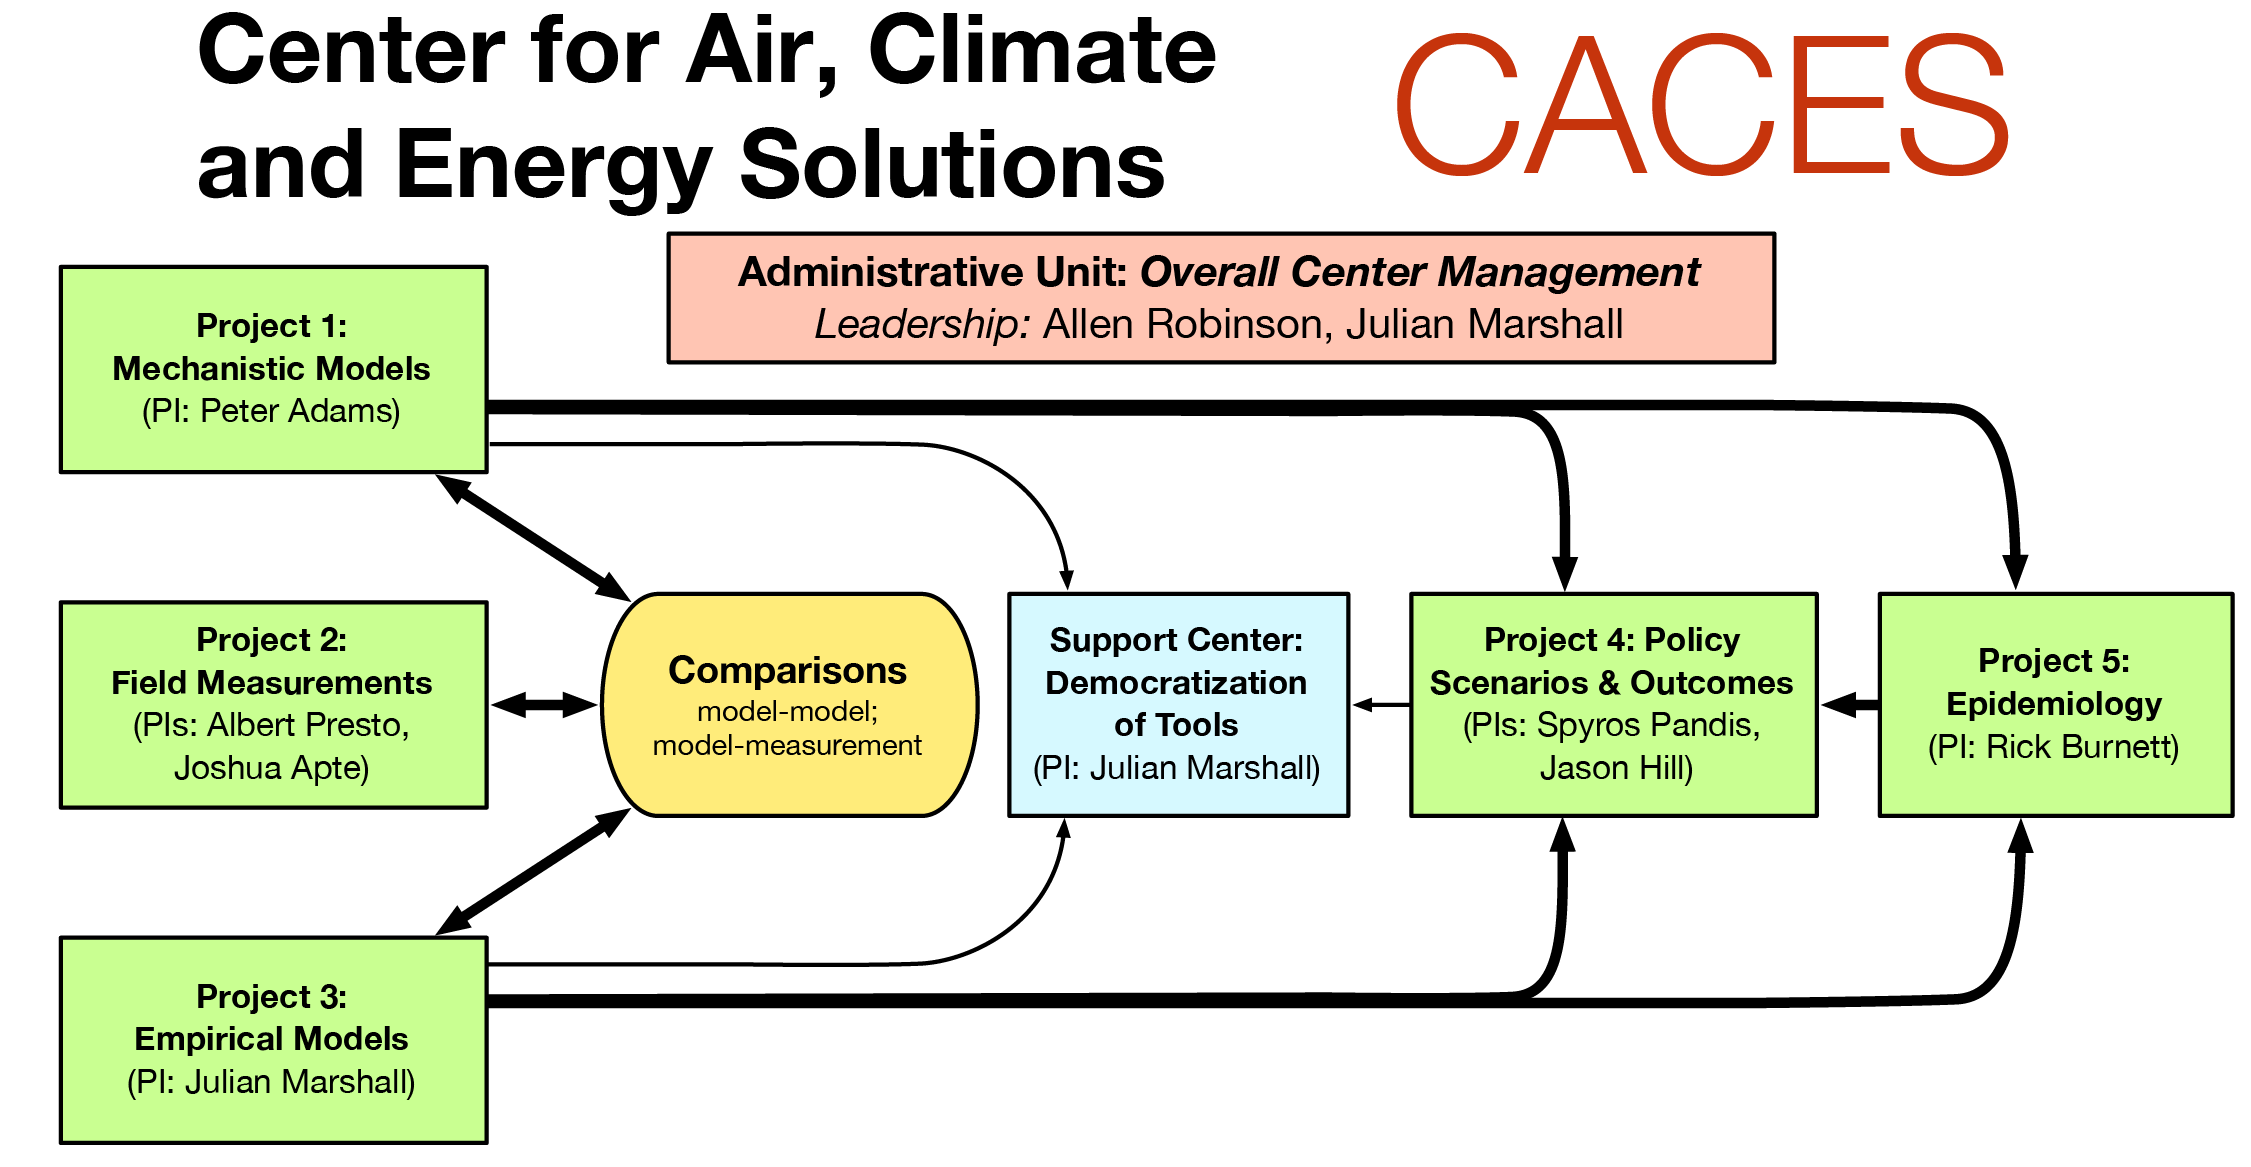 Center for Air, Climate, and Energy Solutions